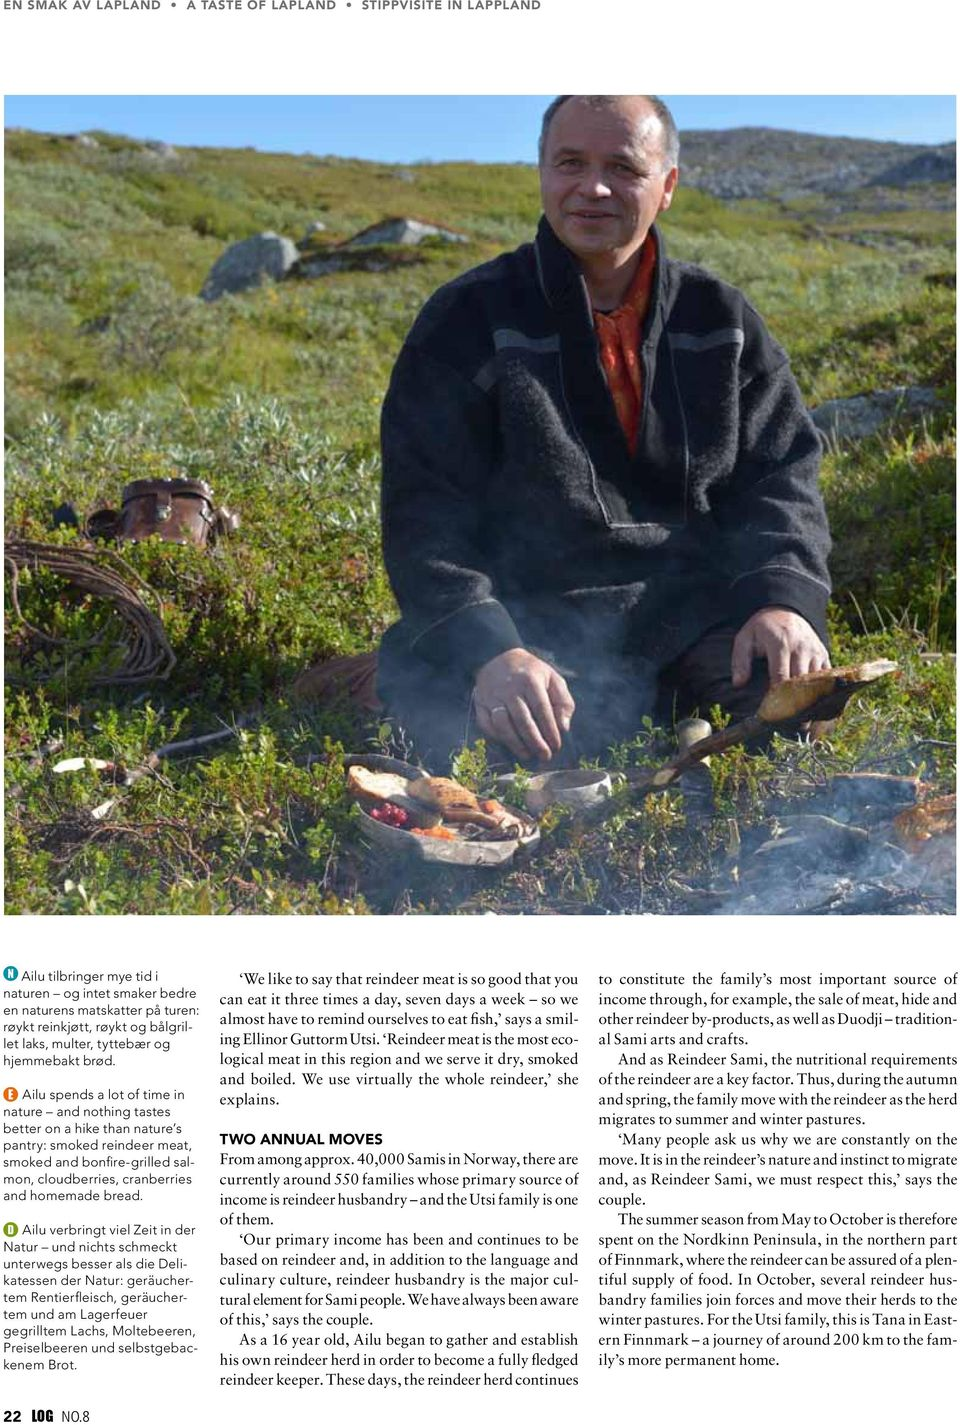 Ailu spends a lot of time in nature and nothing tastes better on a hike than nature s pantry: smoked reindeer meat, smoked and bonfire-grilled salmon, cloudberries, cranberries and homemade bread.